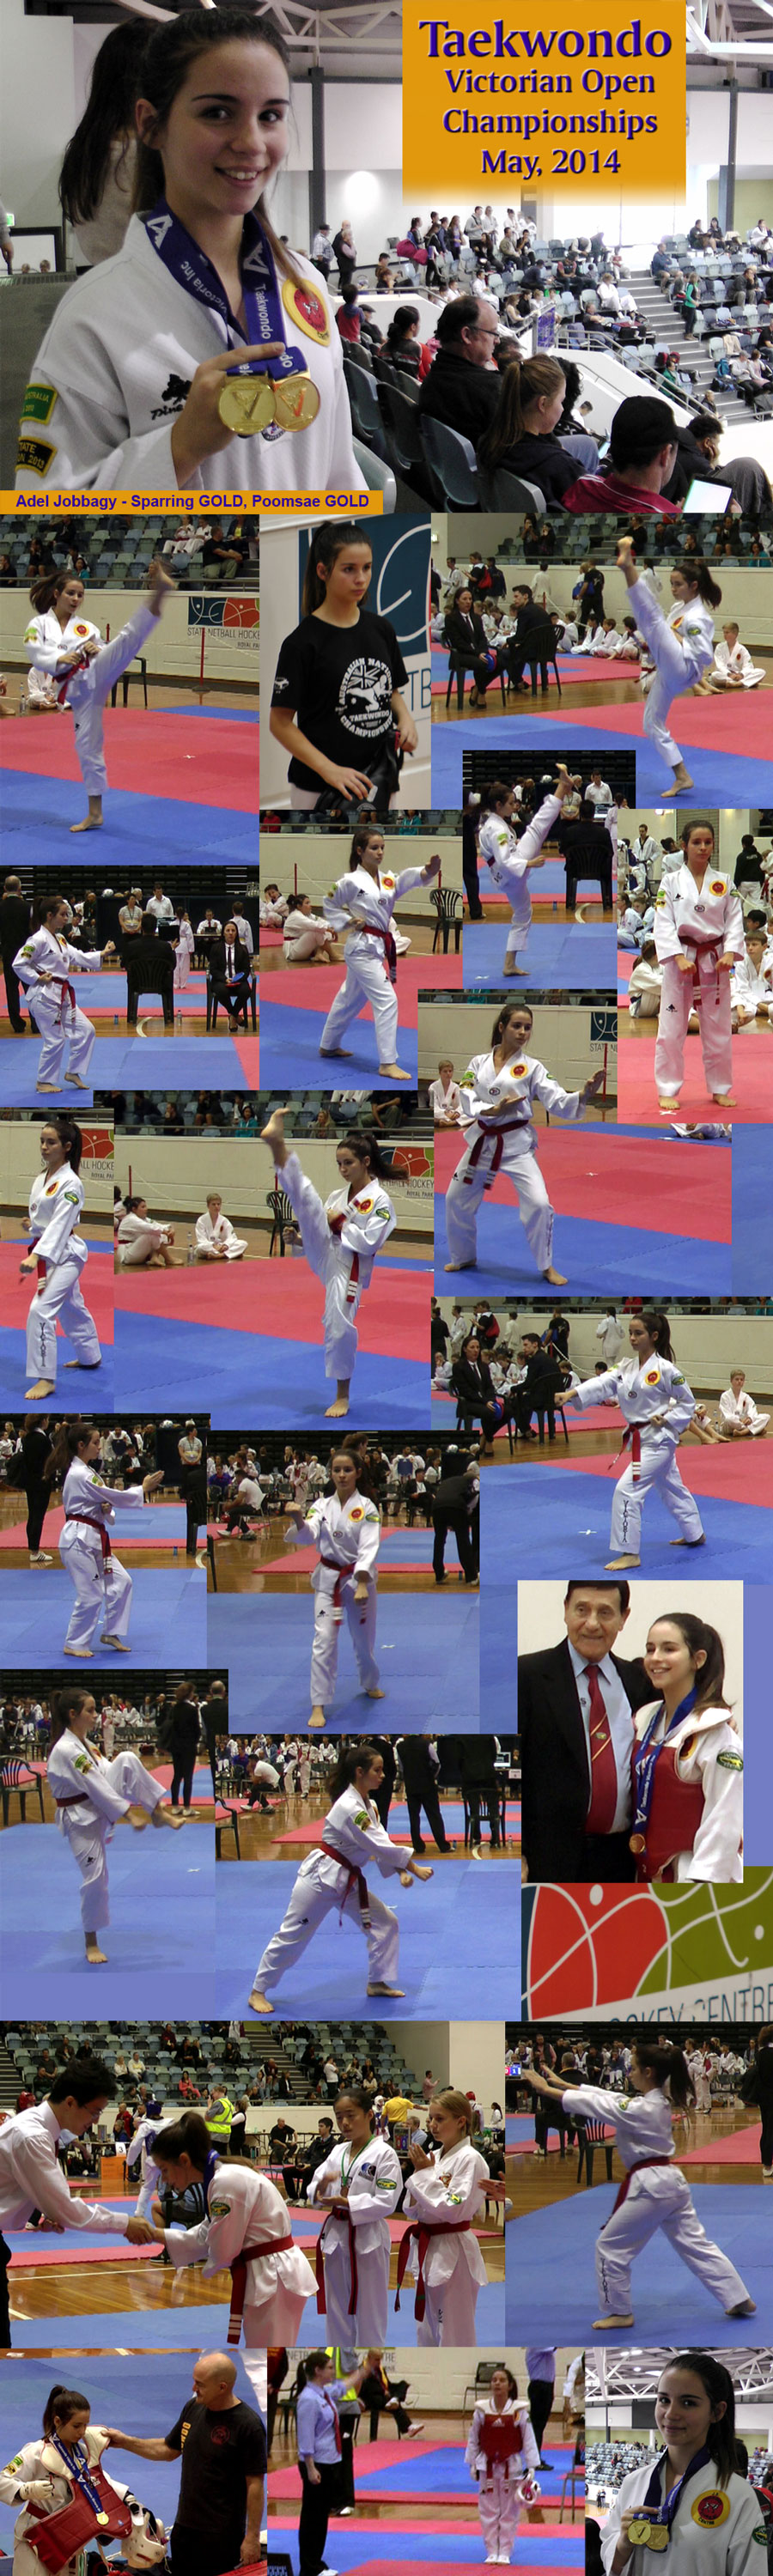 Adel 2 x Gold Medals Vic Open Ch May 2014